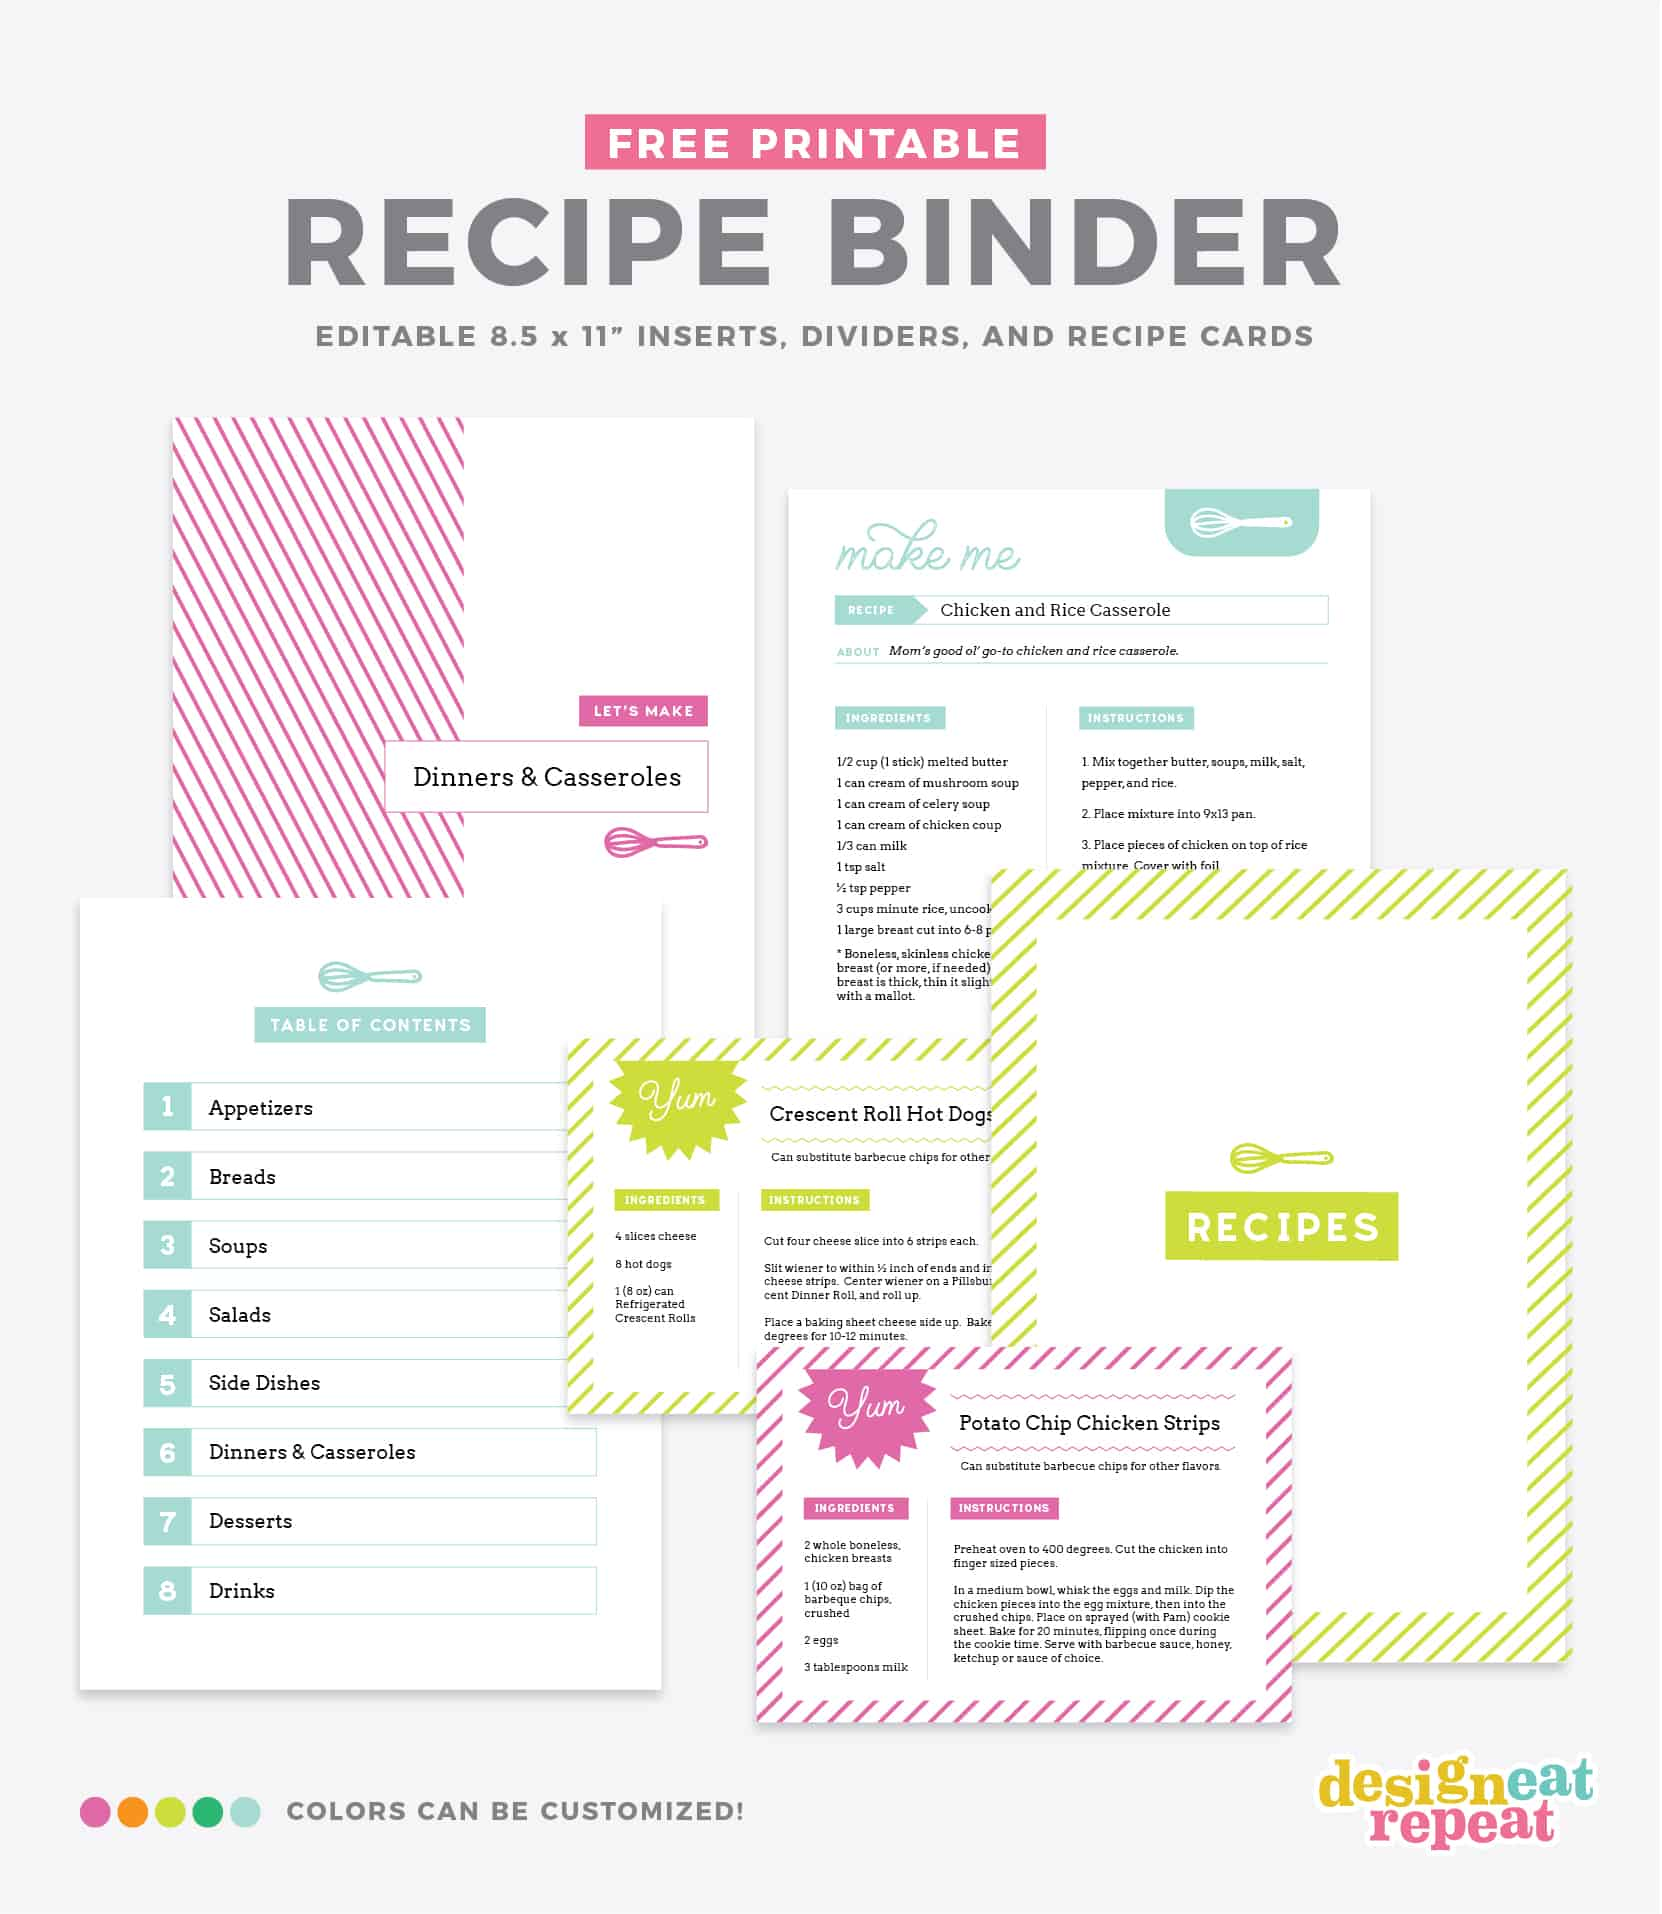 Organize Your Favorite Recipes Into A Diy Recipe Book With These Fun And Free Printable